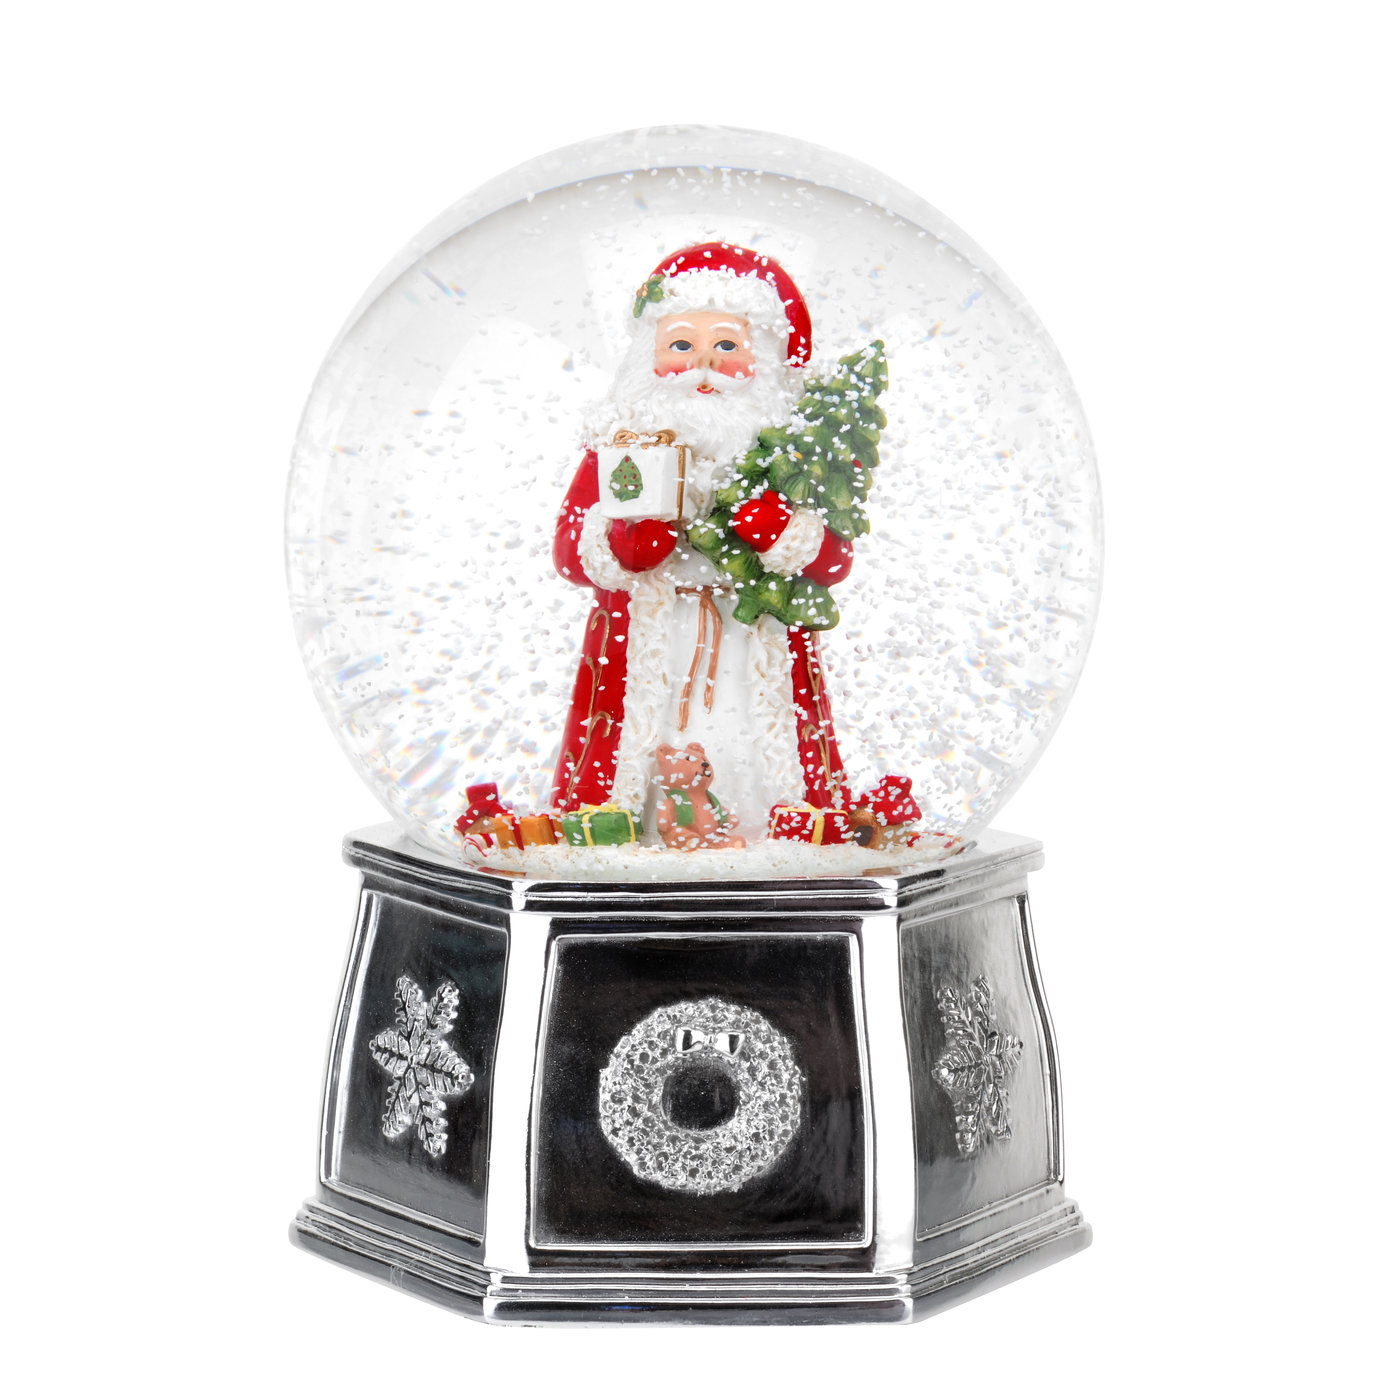 Spode Christmas Tree 6.5 Inch Santa Musical Snow Globe image number 0